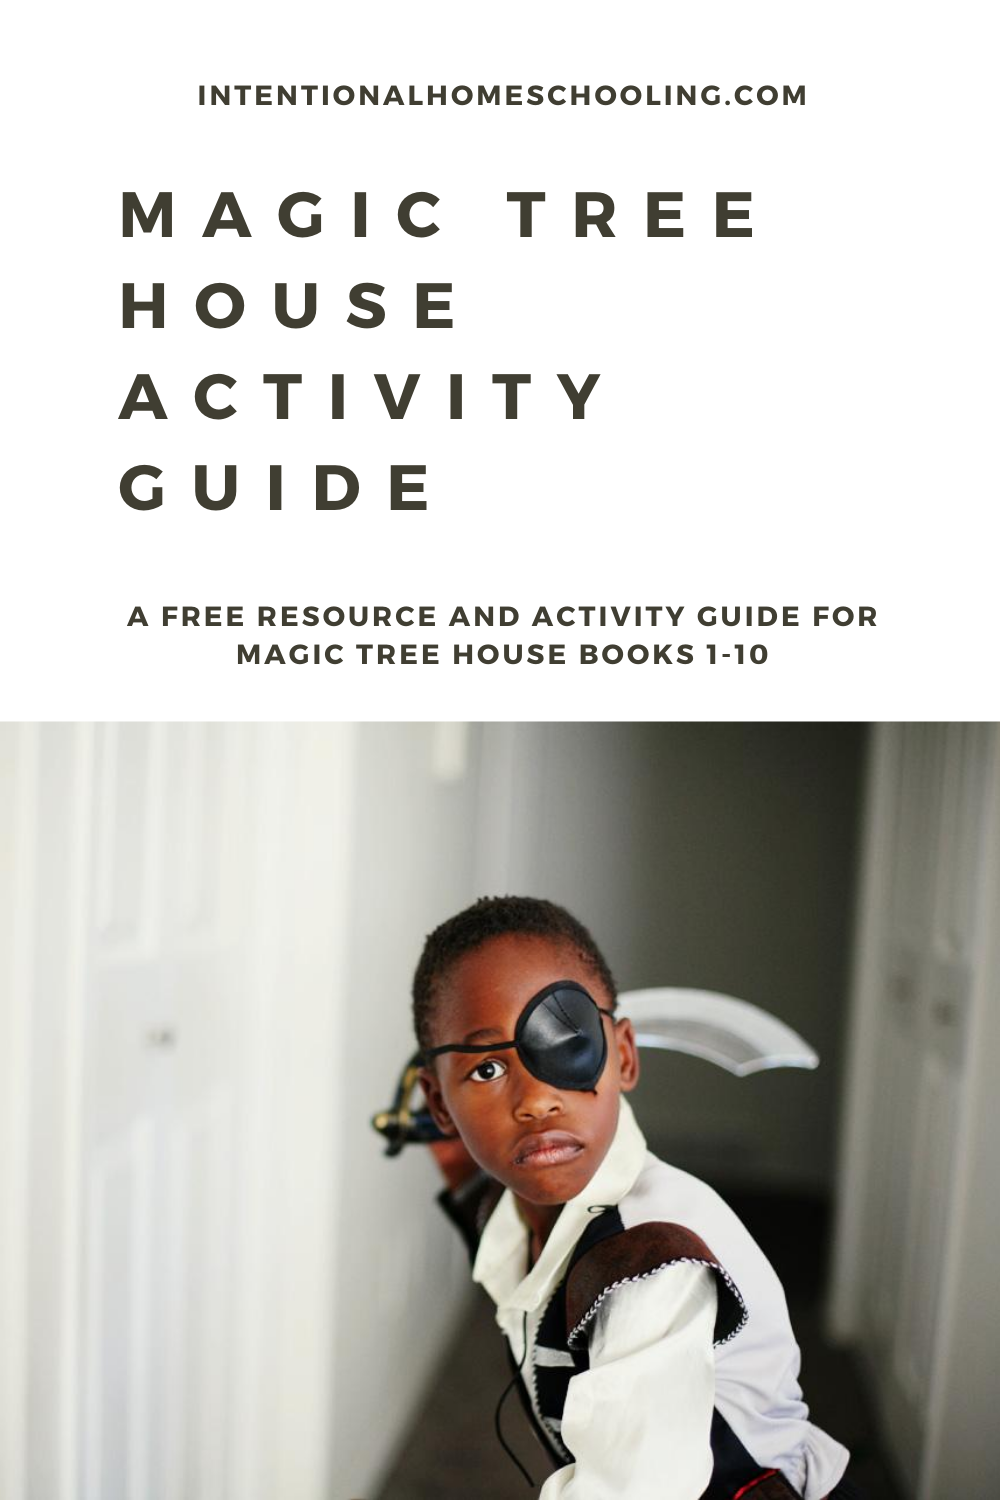 Magic Tree House Activity Guide - a free online resource guide for Magic Tree House books